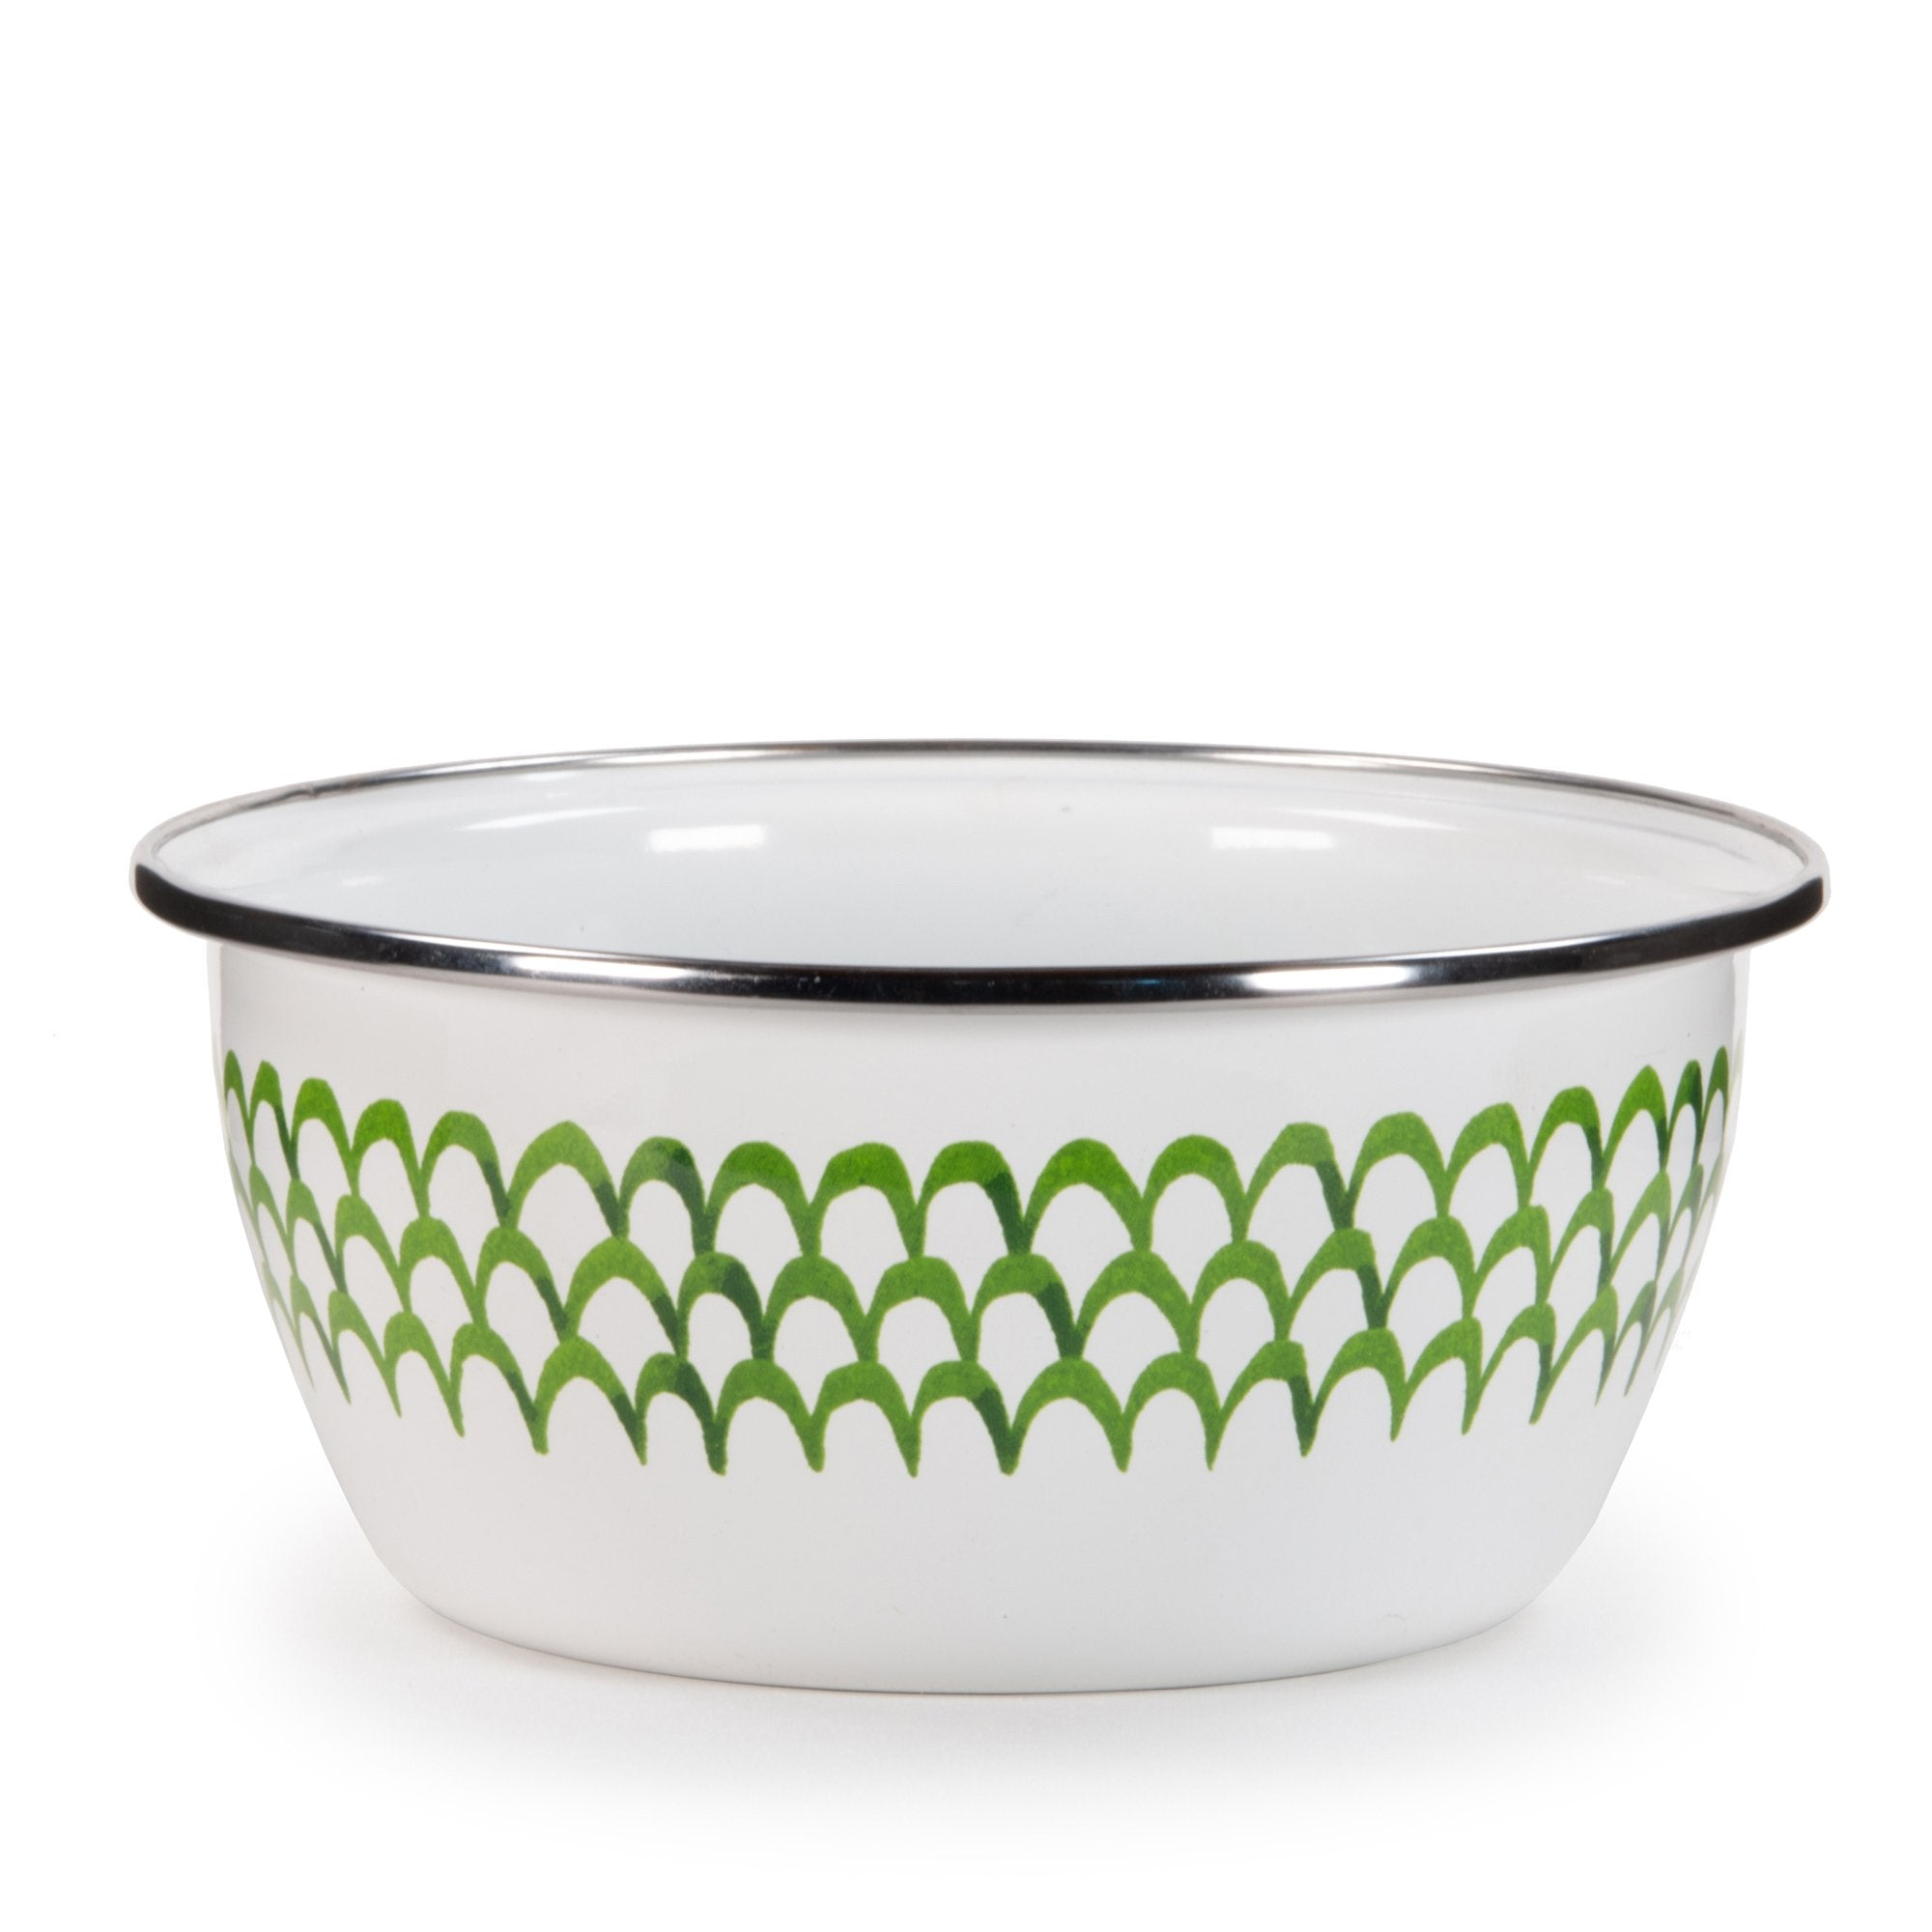 GS61S4 - Set of 4 Green Scallop Salad Bowls Product 1